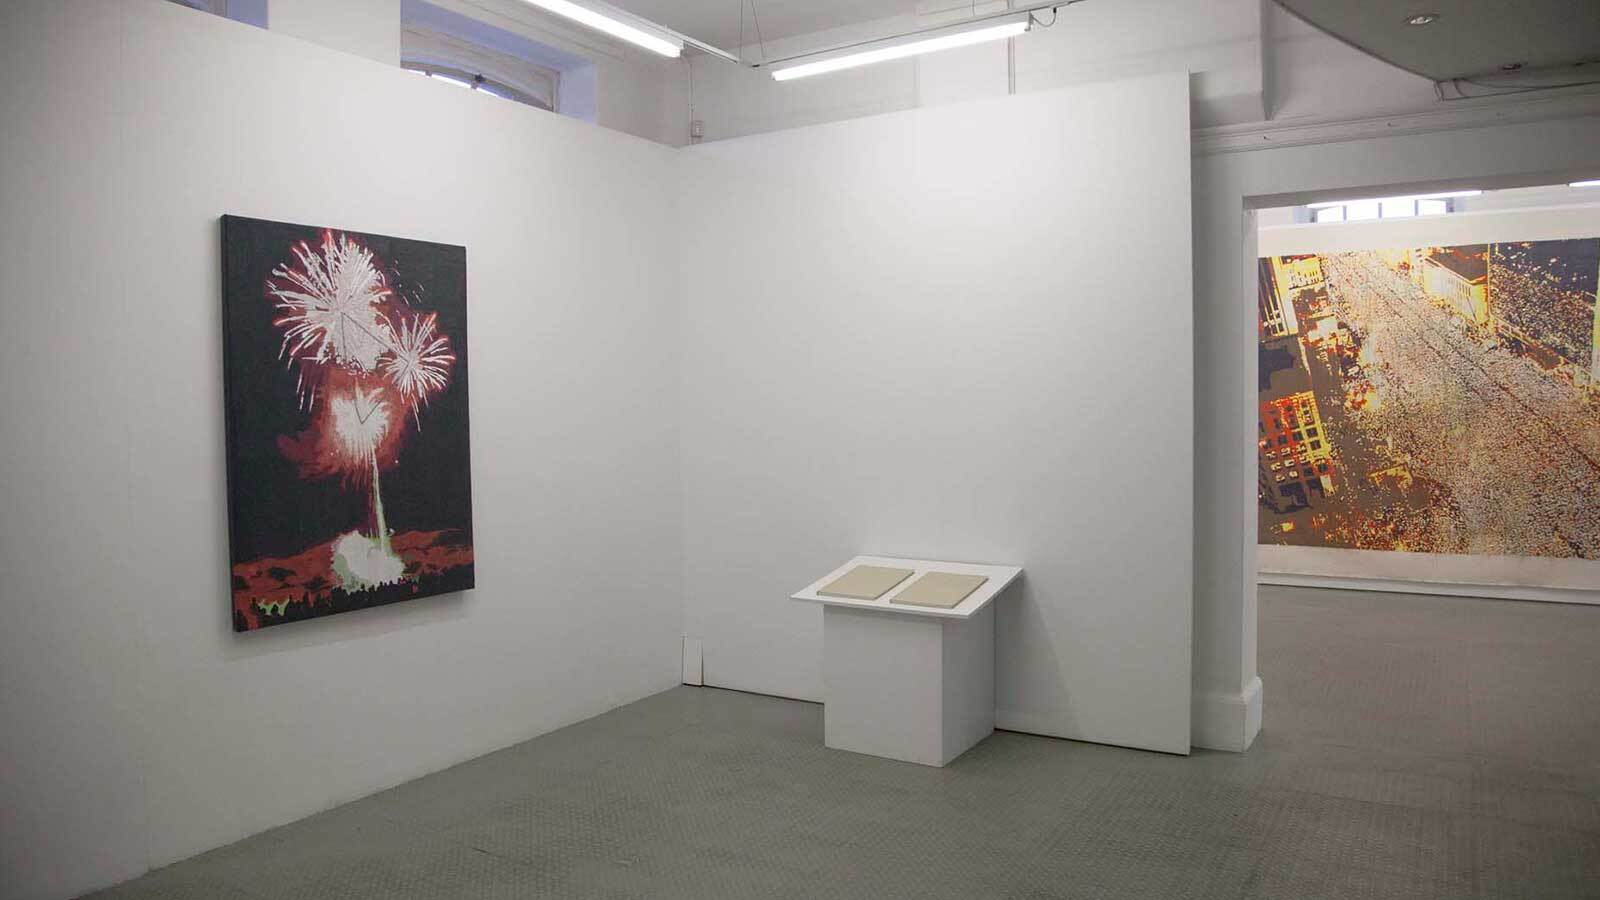 Photograph of Young In Hong's exhibition at Exeter Phoenix